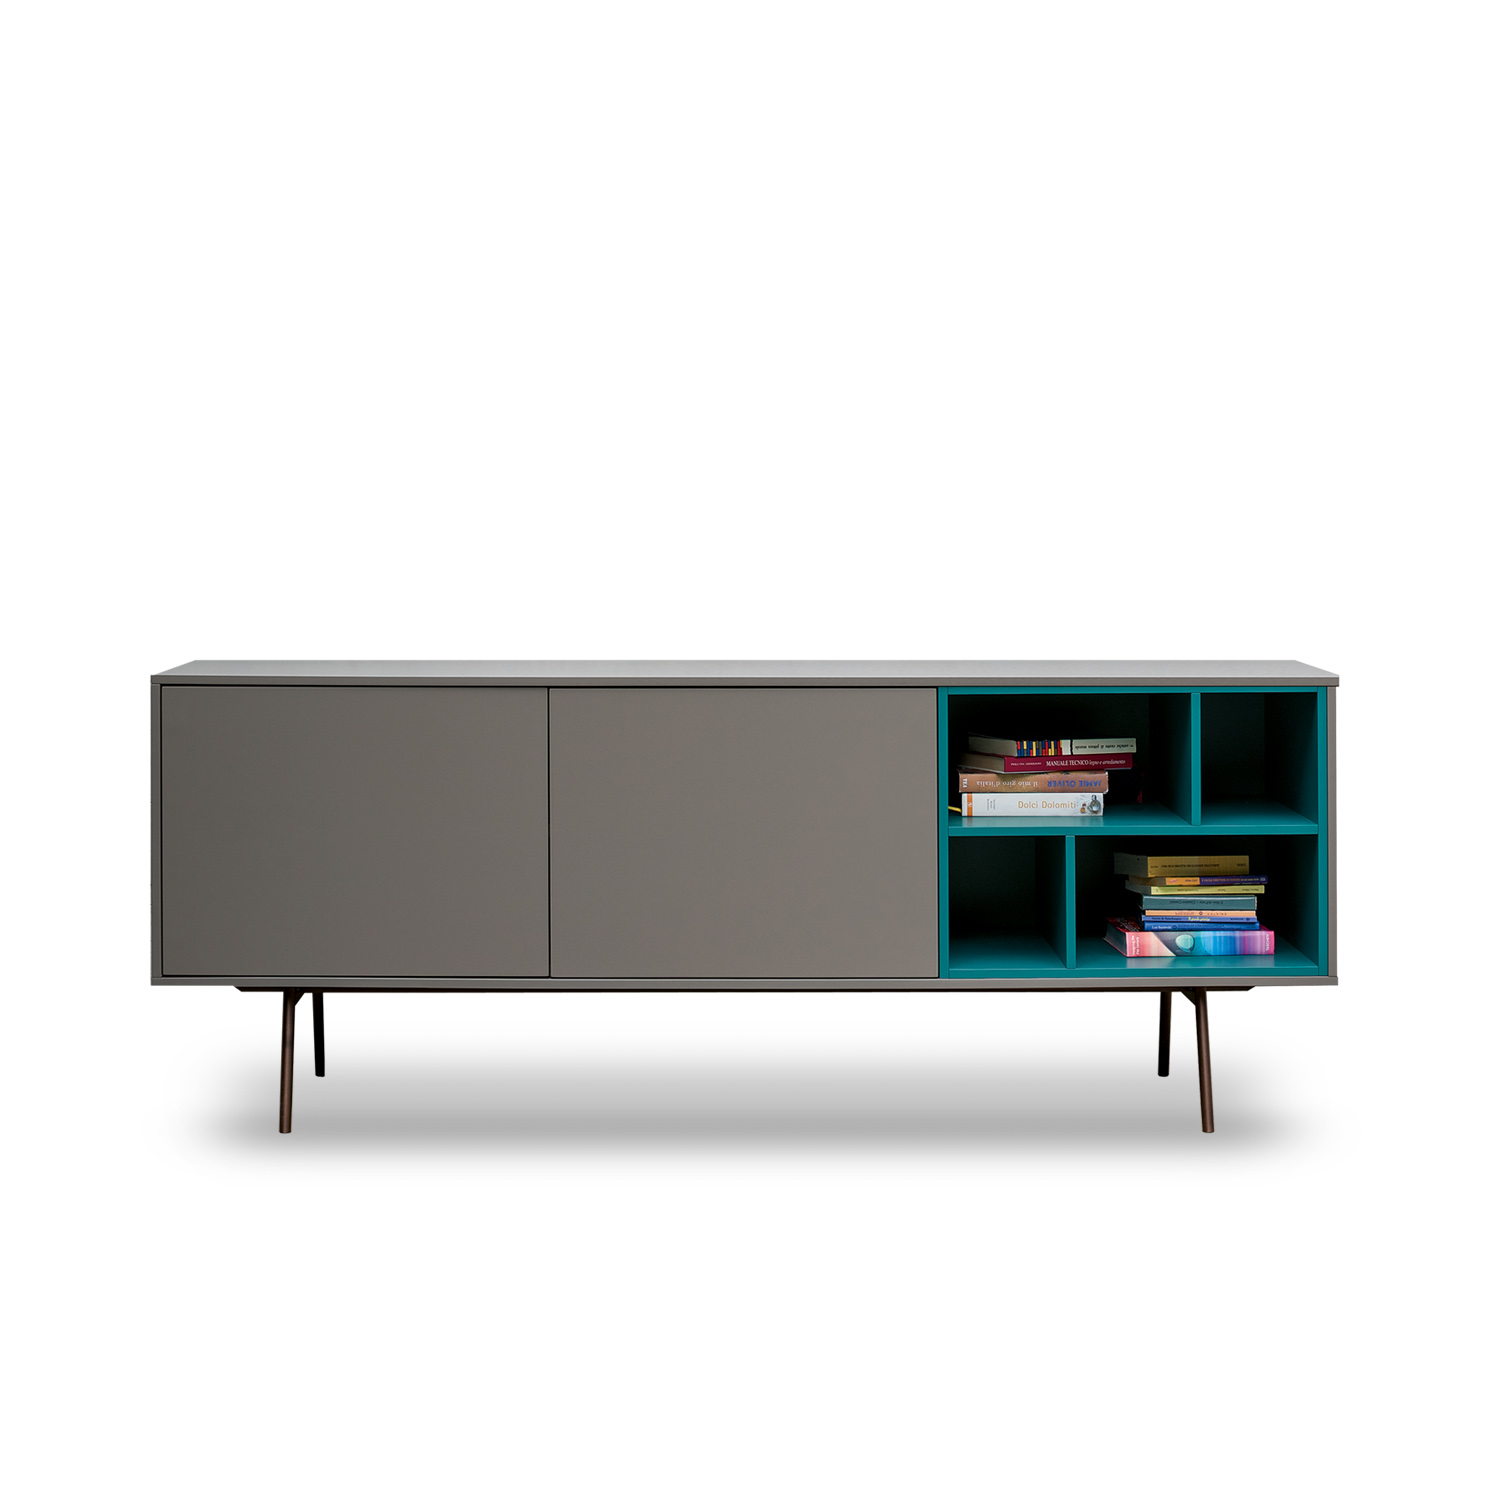 italian-contemporary-furniture-grey-modern-sideboard-for-dining-and-living-room-by-dallagnese.jpg